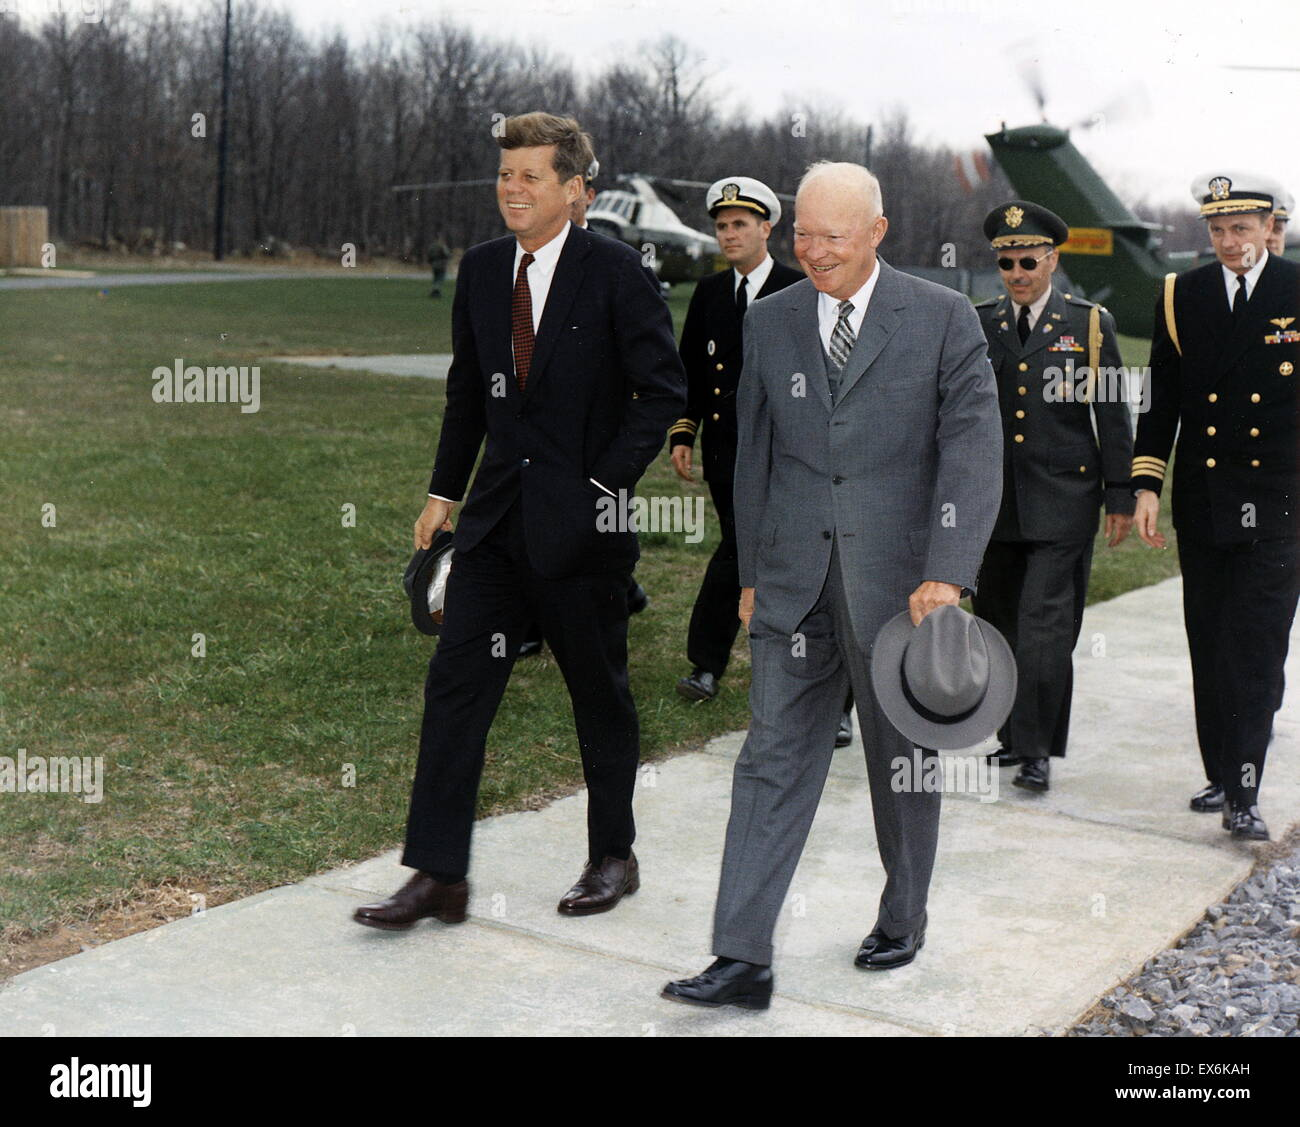 President John Kennedy and Dwight Eisenhower at Camp David, 1962 - Stock Image